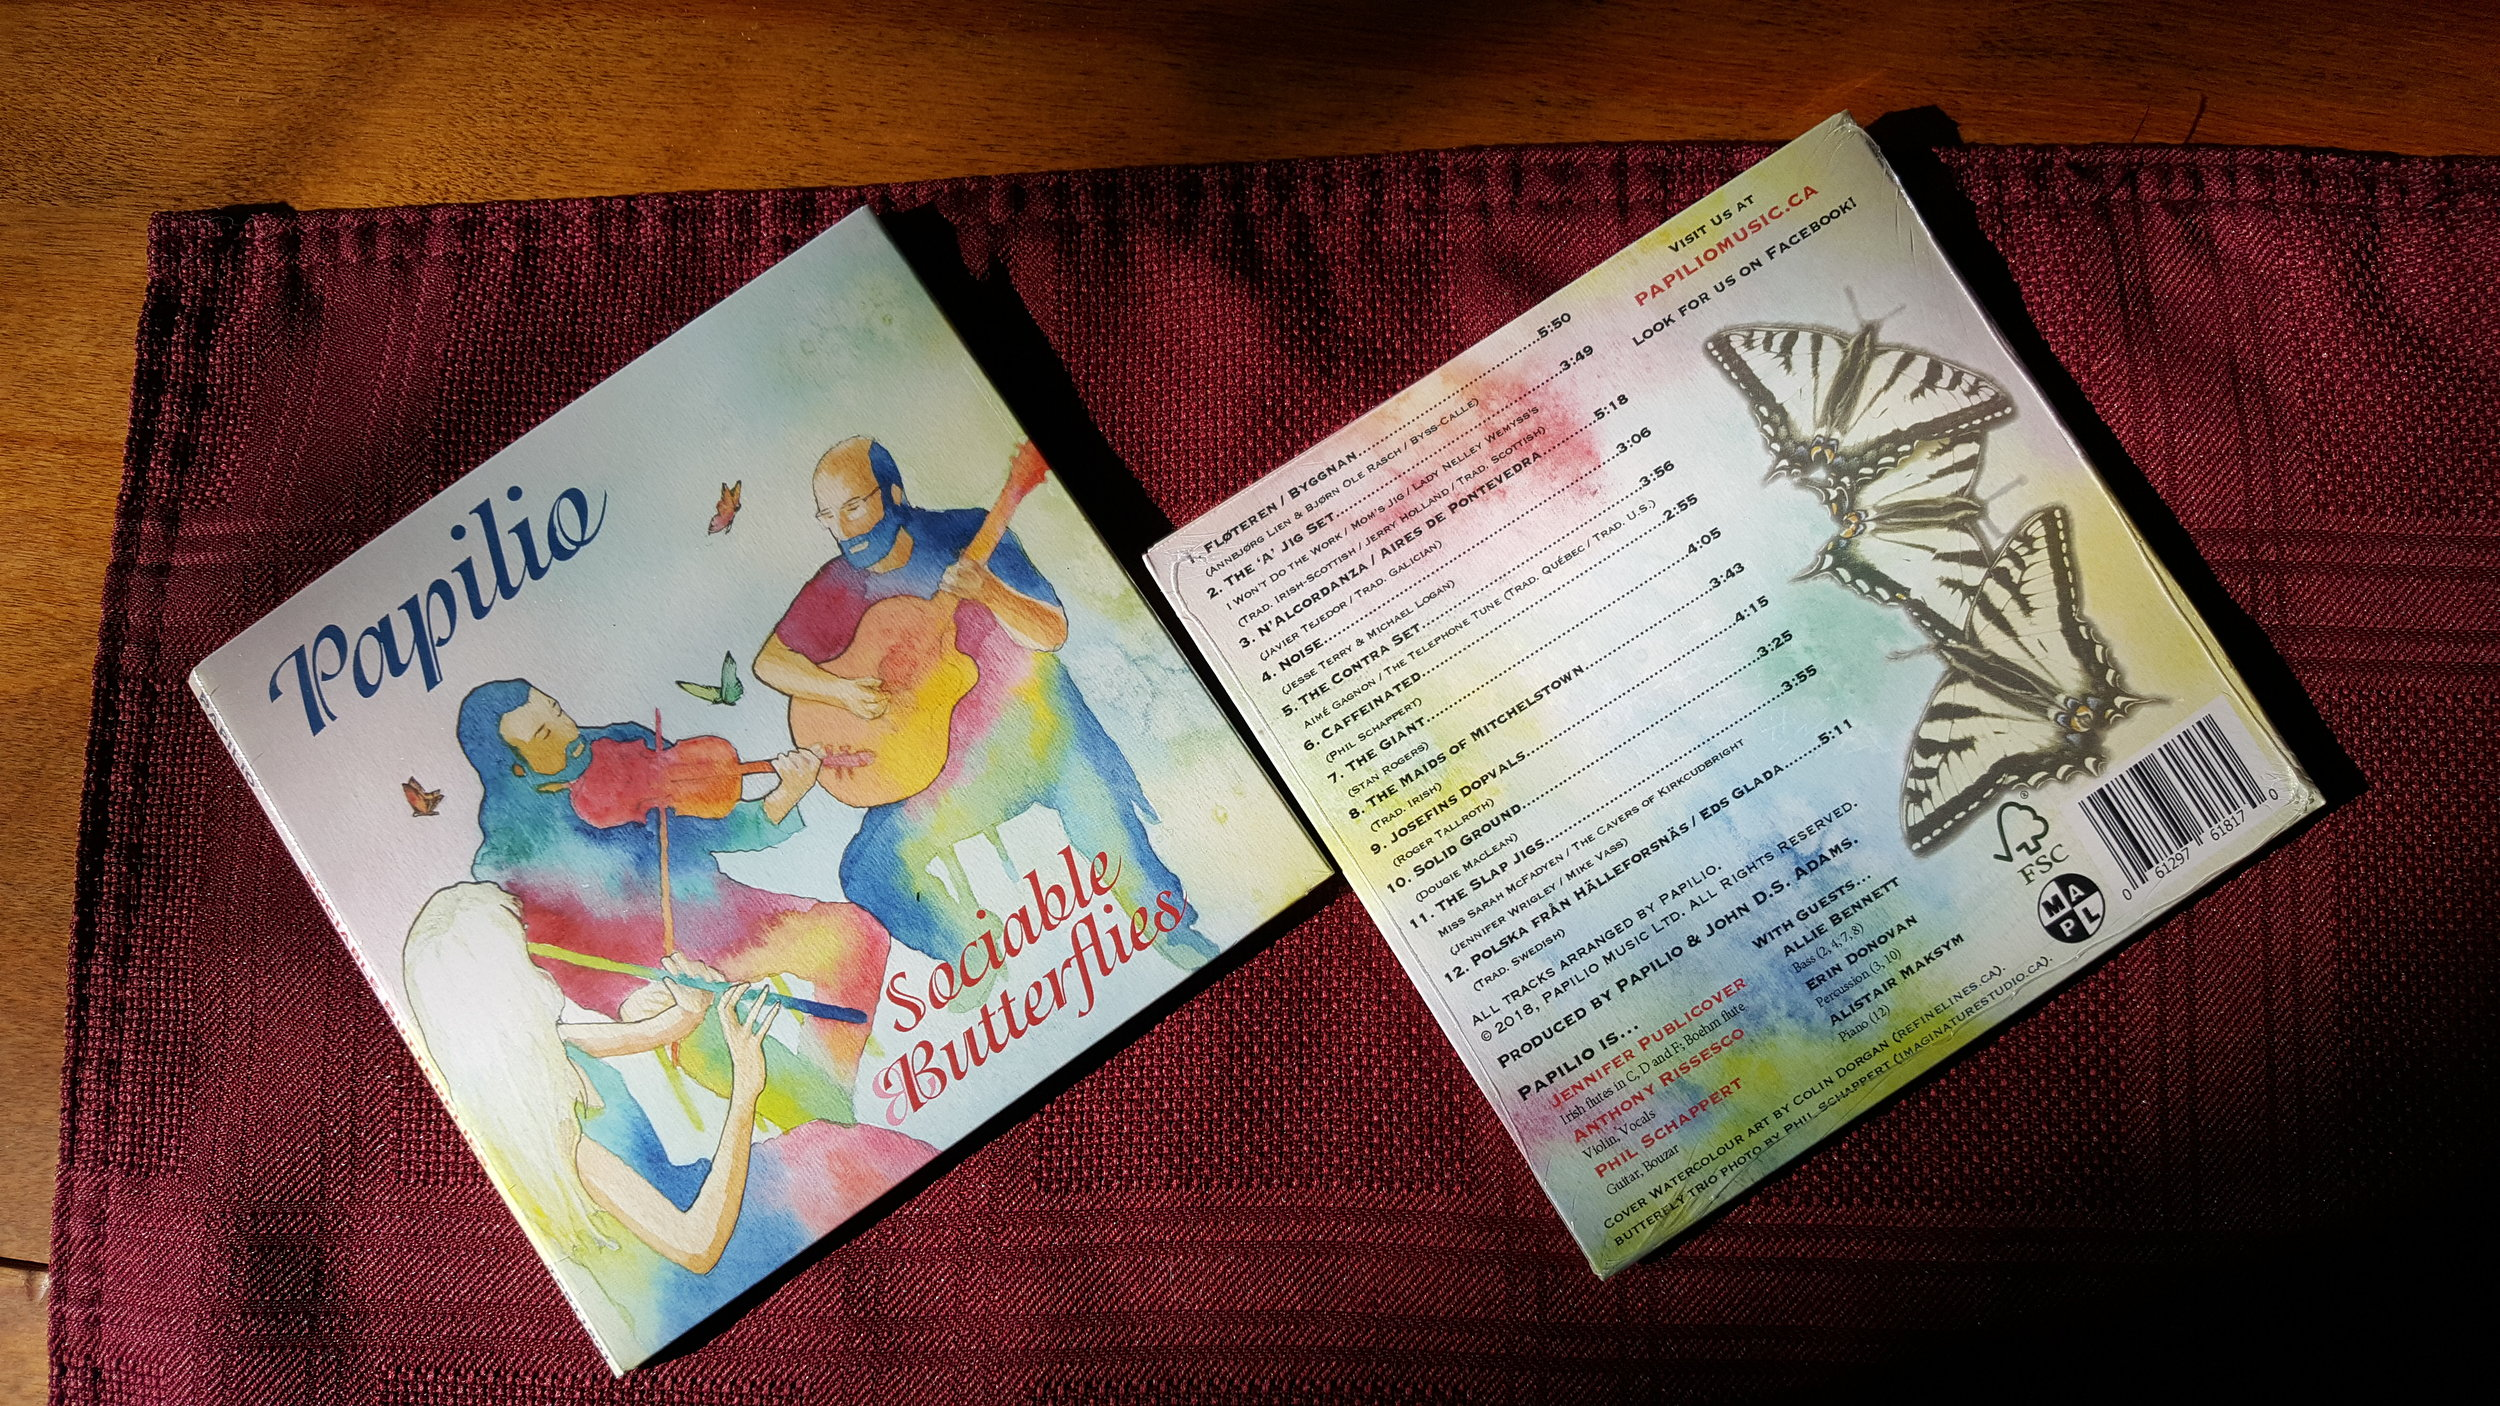 "Oct. 2018: The inventory of Papilio's second album ""Sociable Butterflies"" has arrived in cd format, and digital download and other options will be set up very soon - details soon."